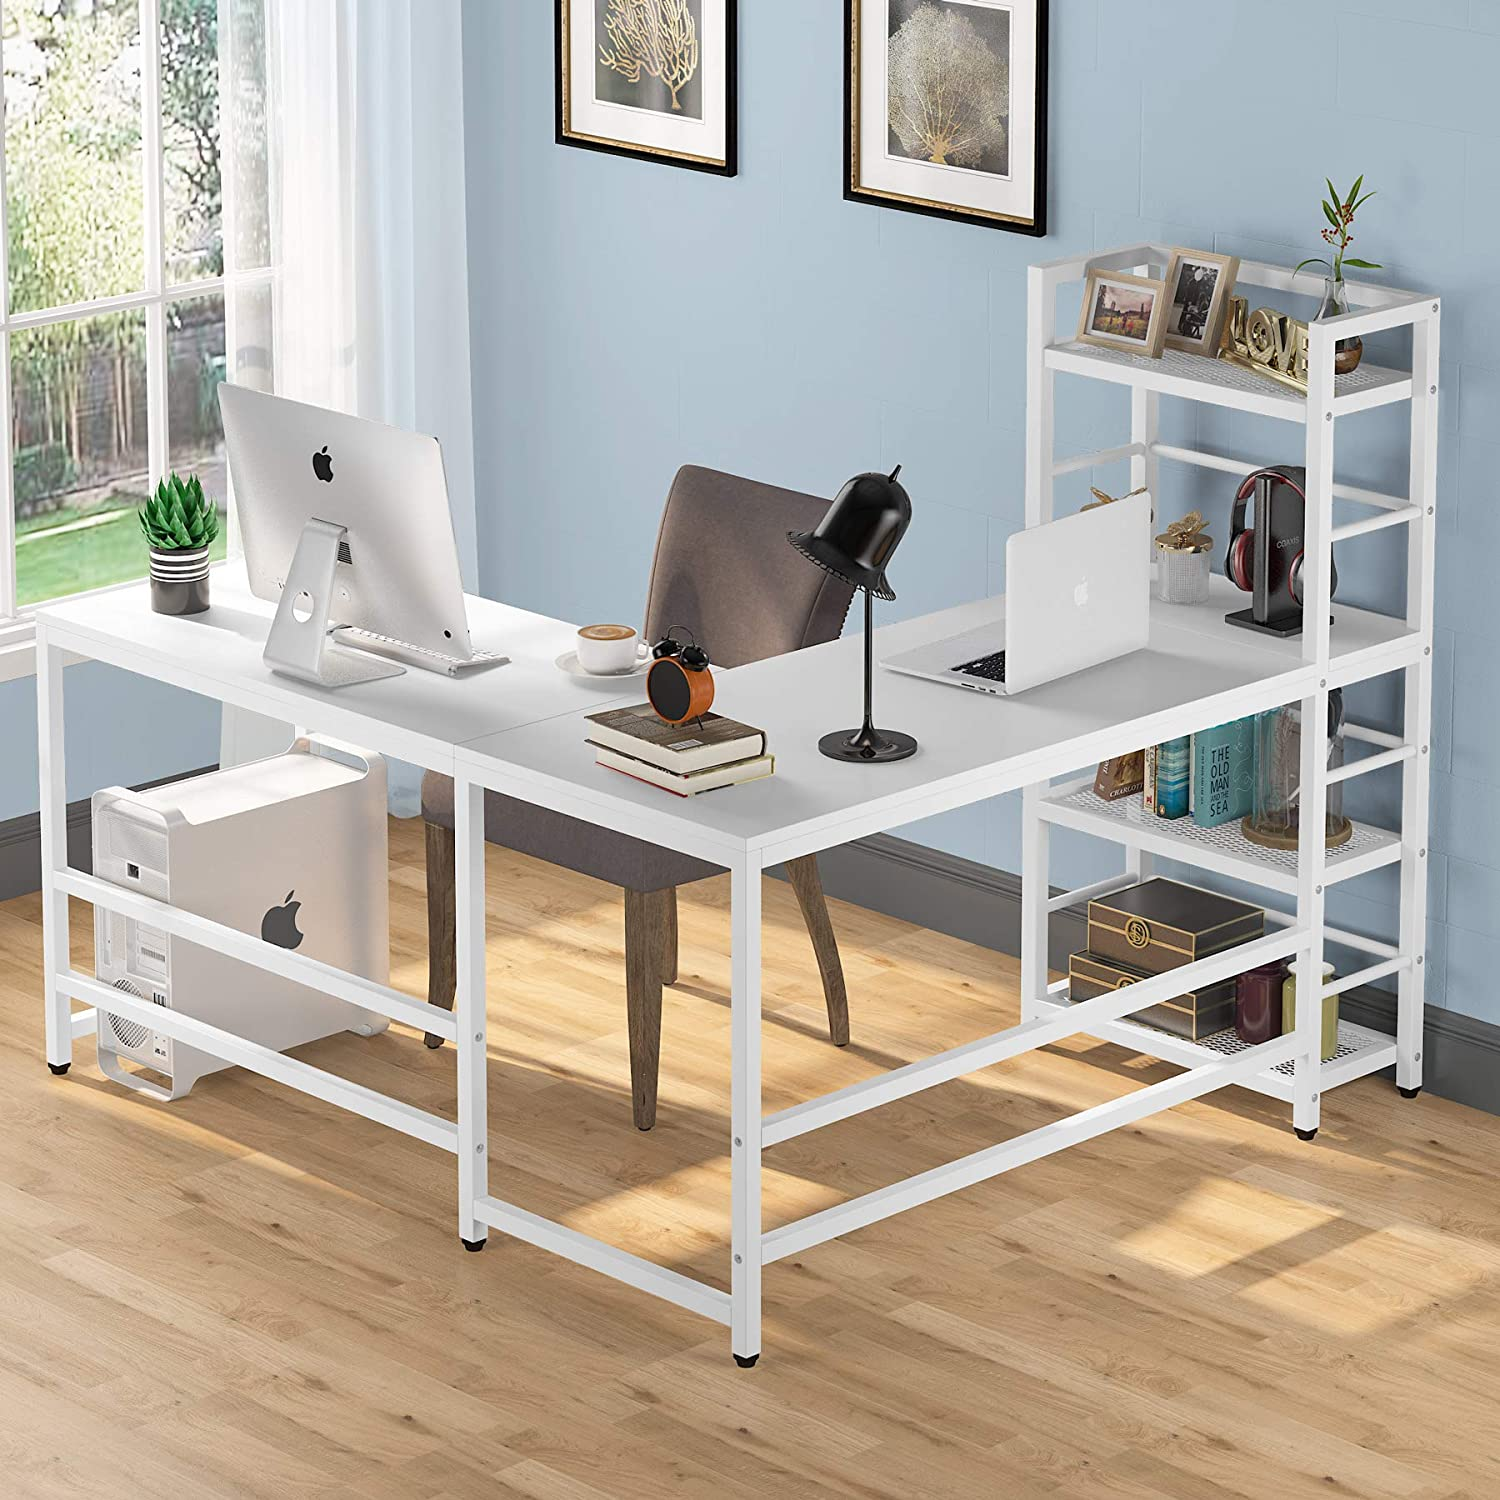 Tribesigns 59 Inch L Shaped Bookshelf Reversi Storage Selling rankings with Desk Year-end gift